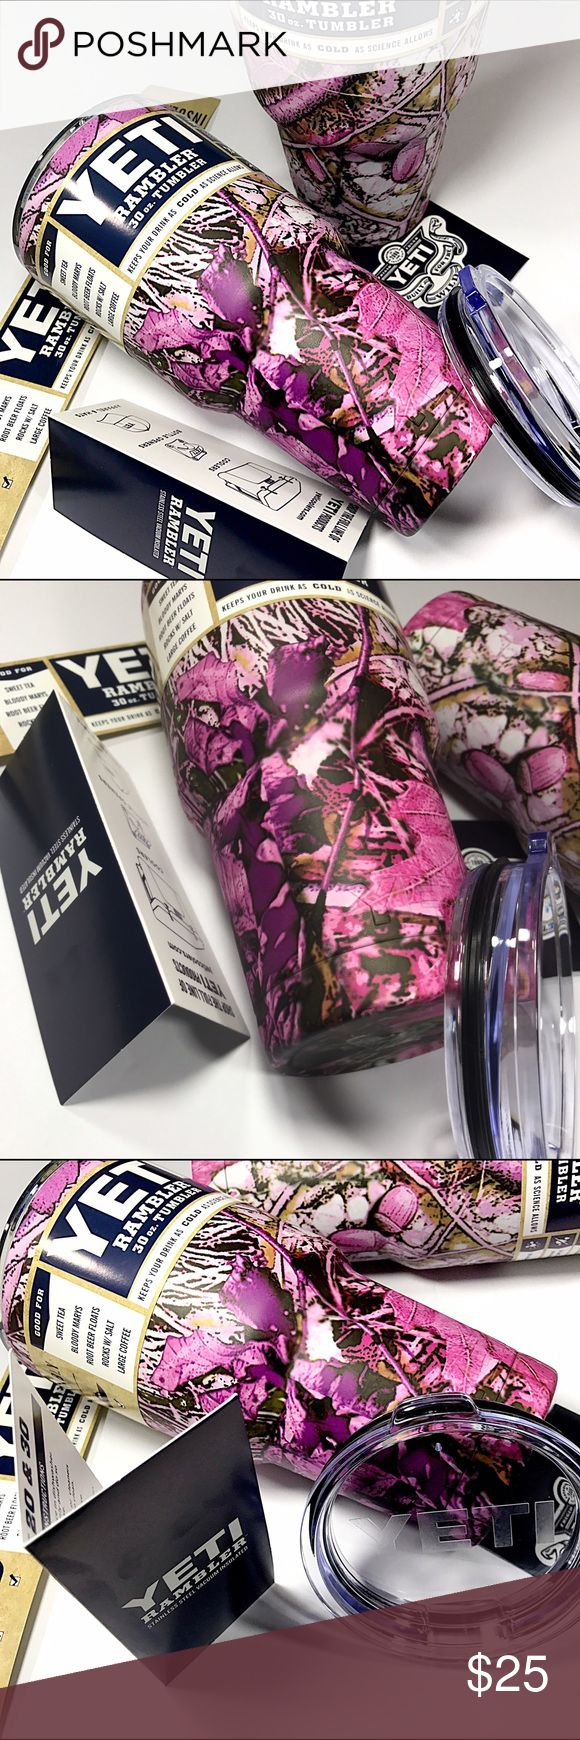 YETI TUMBLERS 30oz, MOSSY OAK PINK CAMO YETI MOSY OAK PINK CAMO    30oz YETI TUMBLER  • Double Wall Vacuum Insulation to Keep your drink Cold. • 18/8 Stainless Steel Durable Kitchen-Grade Steel. • The outside stays dry. No need for a coaster. • Air Tight Seal Heavy duty lid seal locks in the cold. • Keeps Ice Longer twice as long as plastic tumblers. YETI Accessories